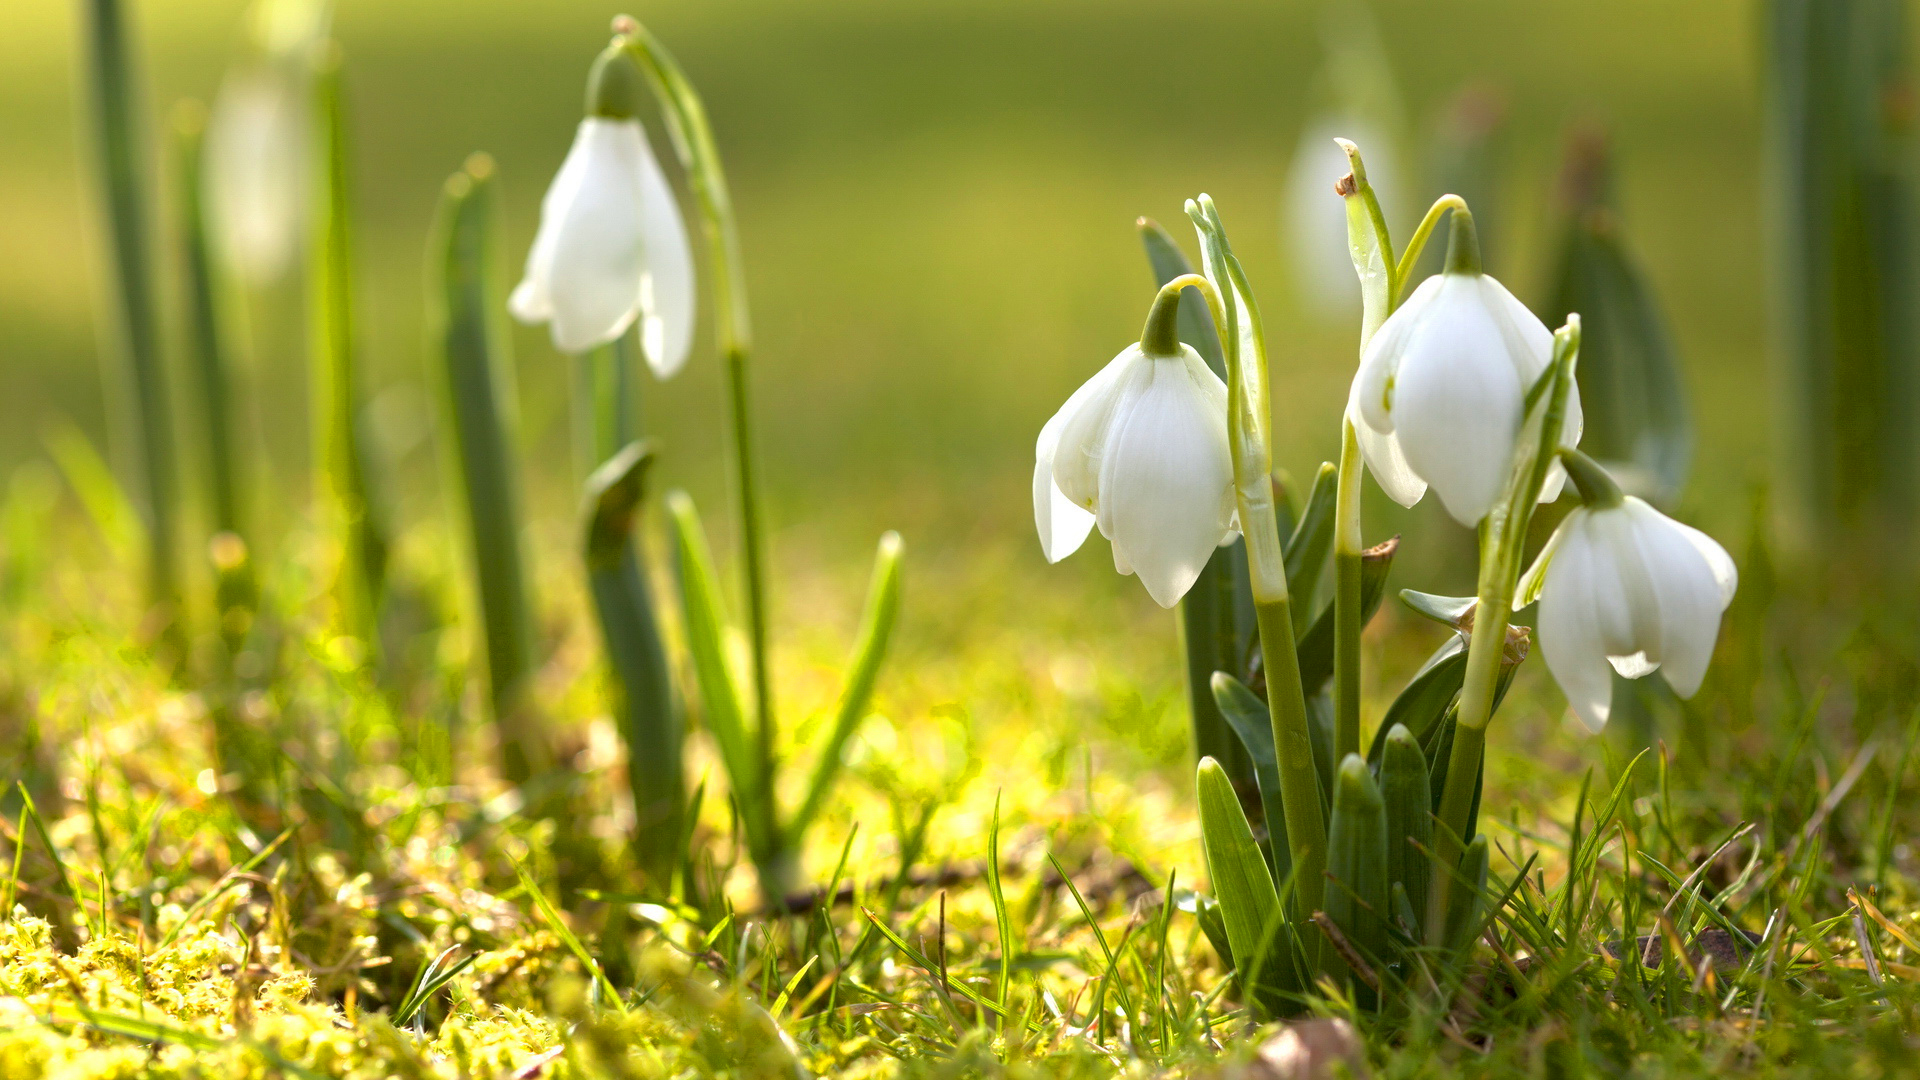 snowdrop  images